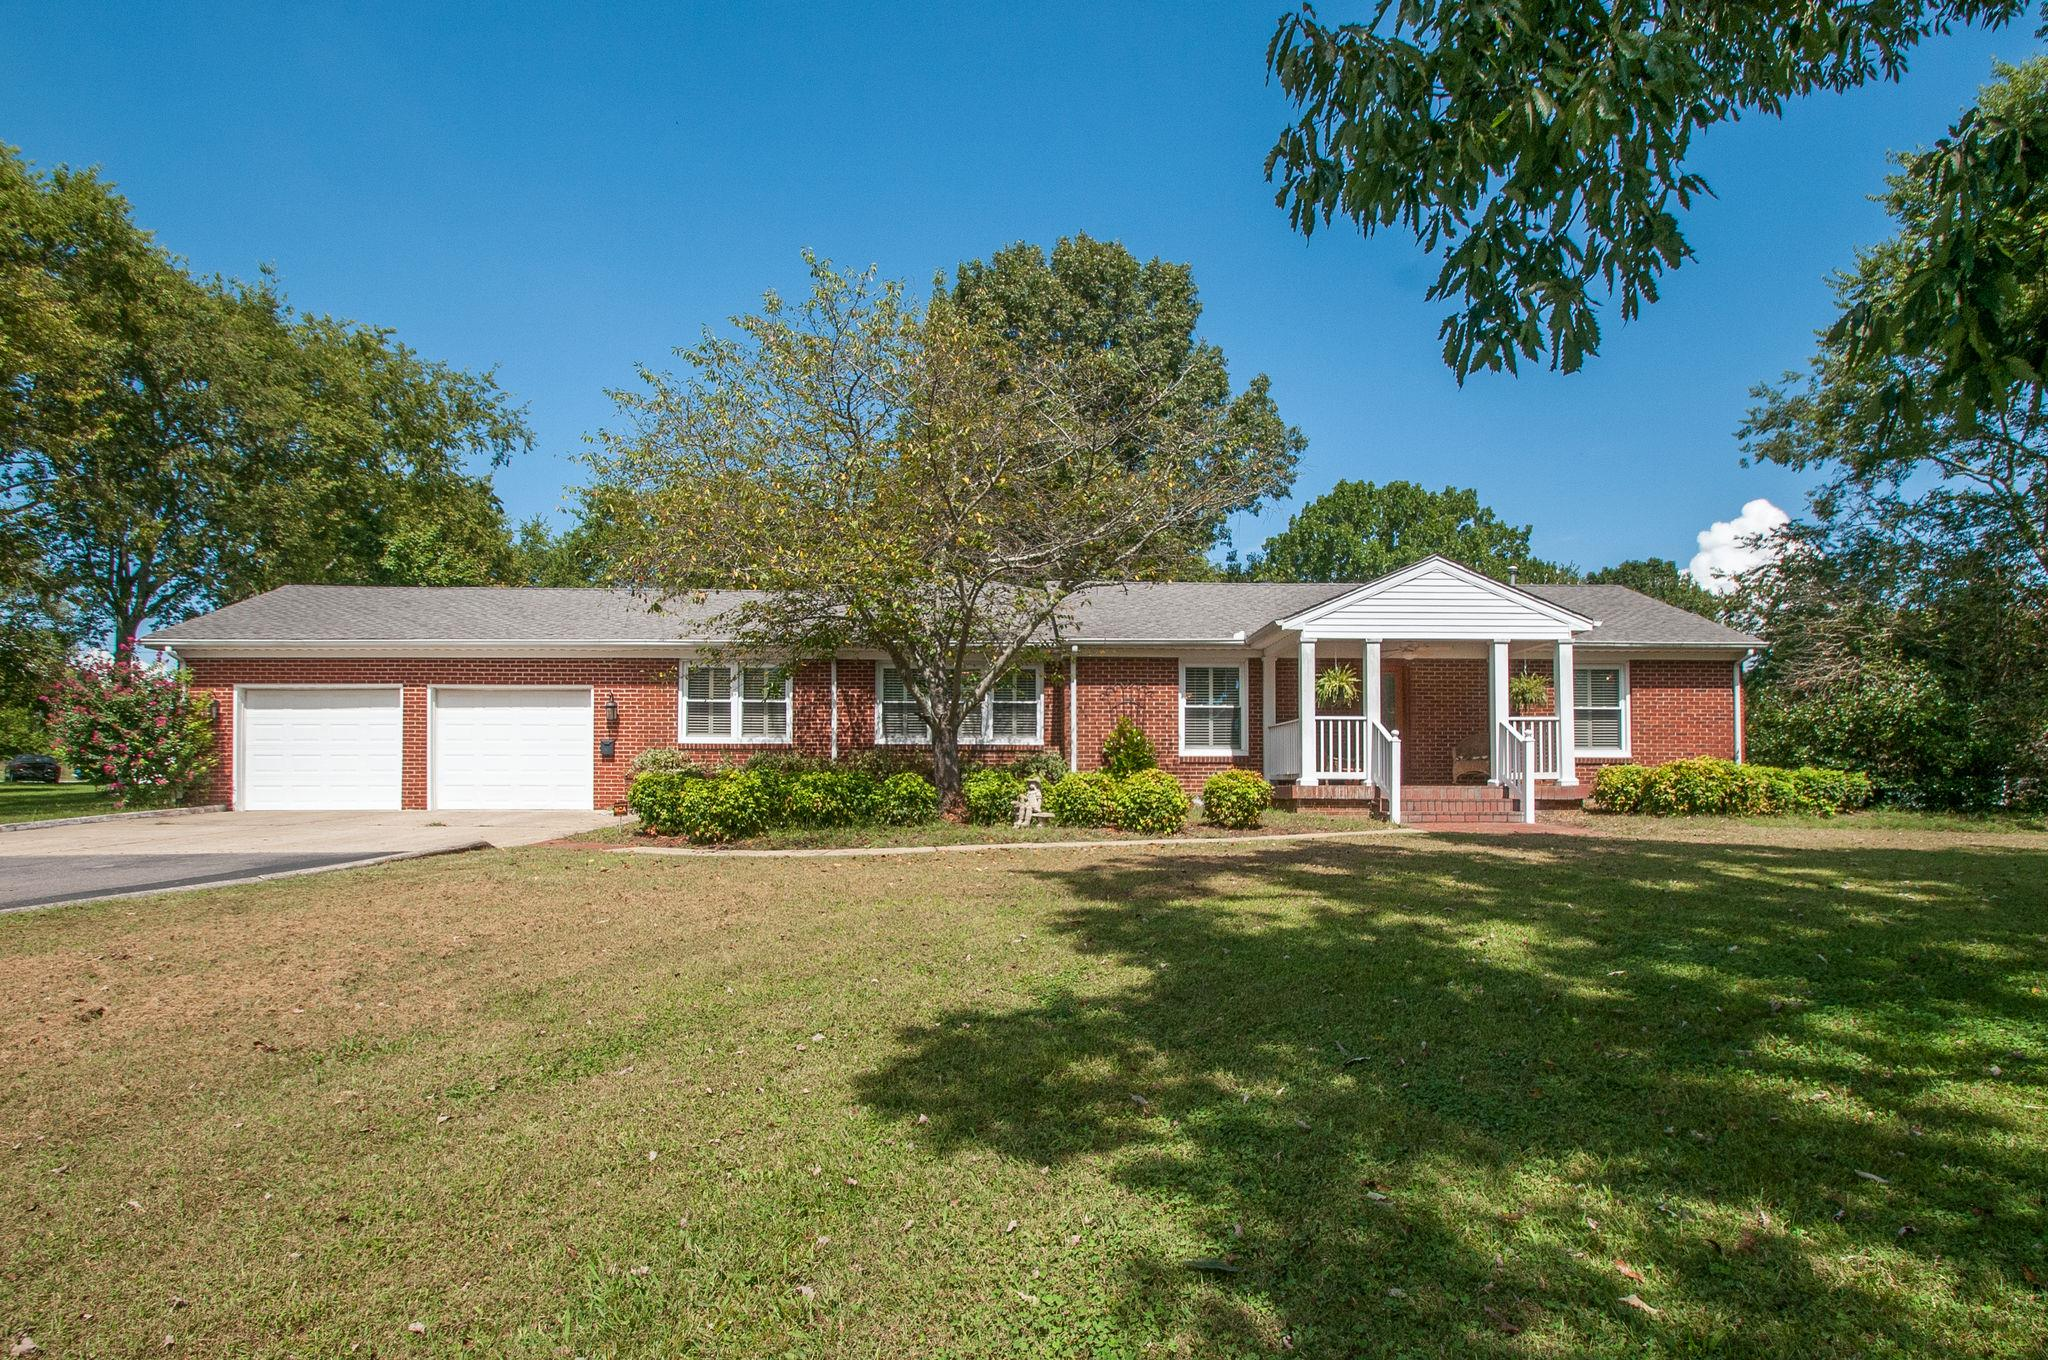 528 Rock Springs Rd, Smyrna, TN 37167 - Smyrna, TN real estate listing